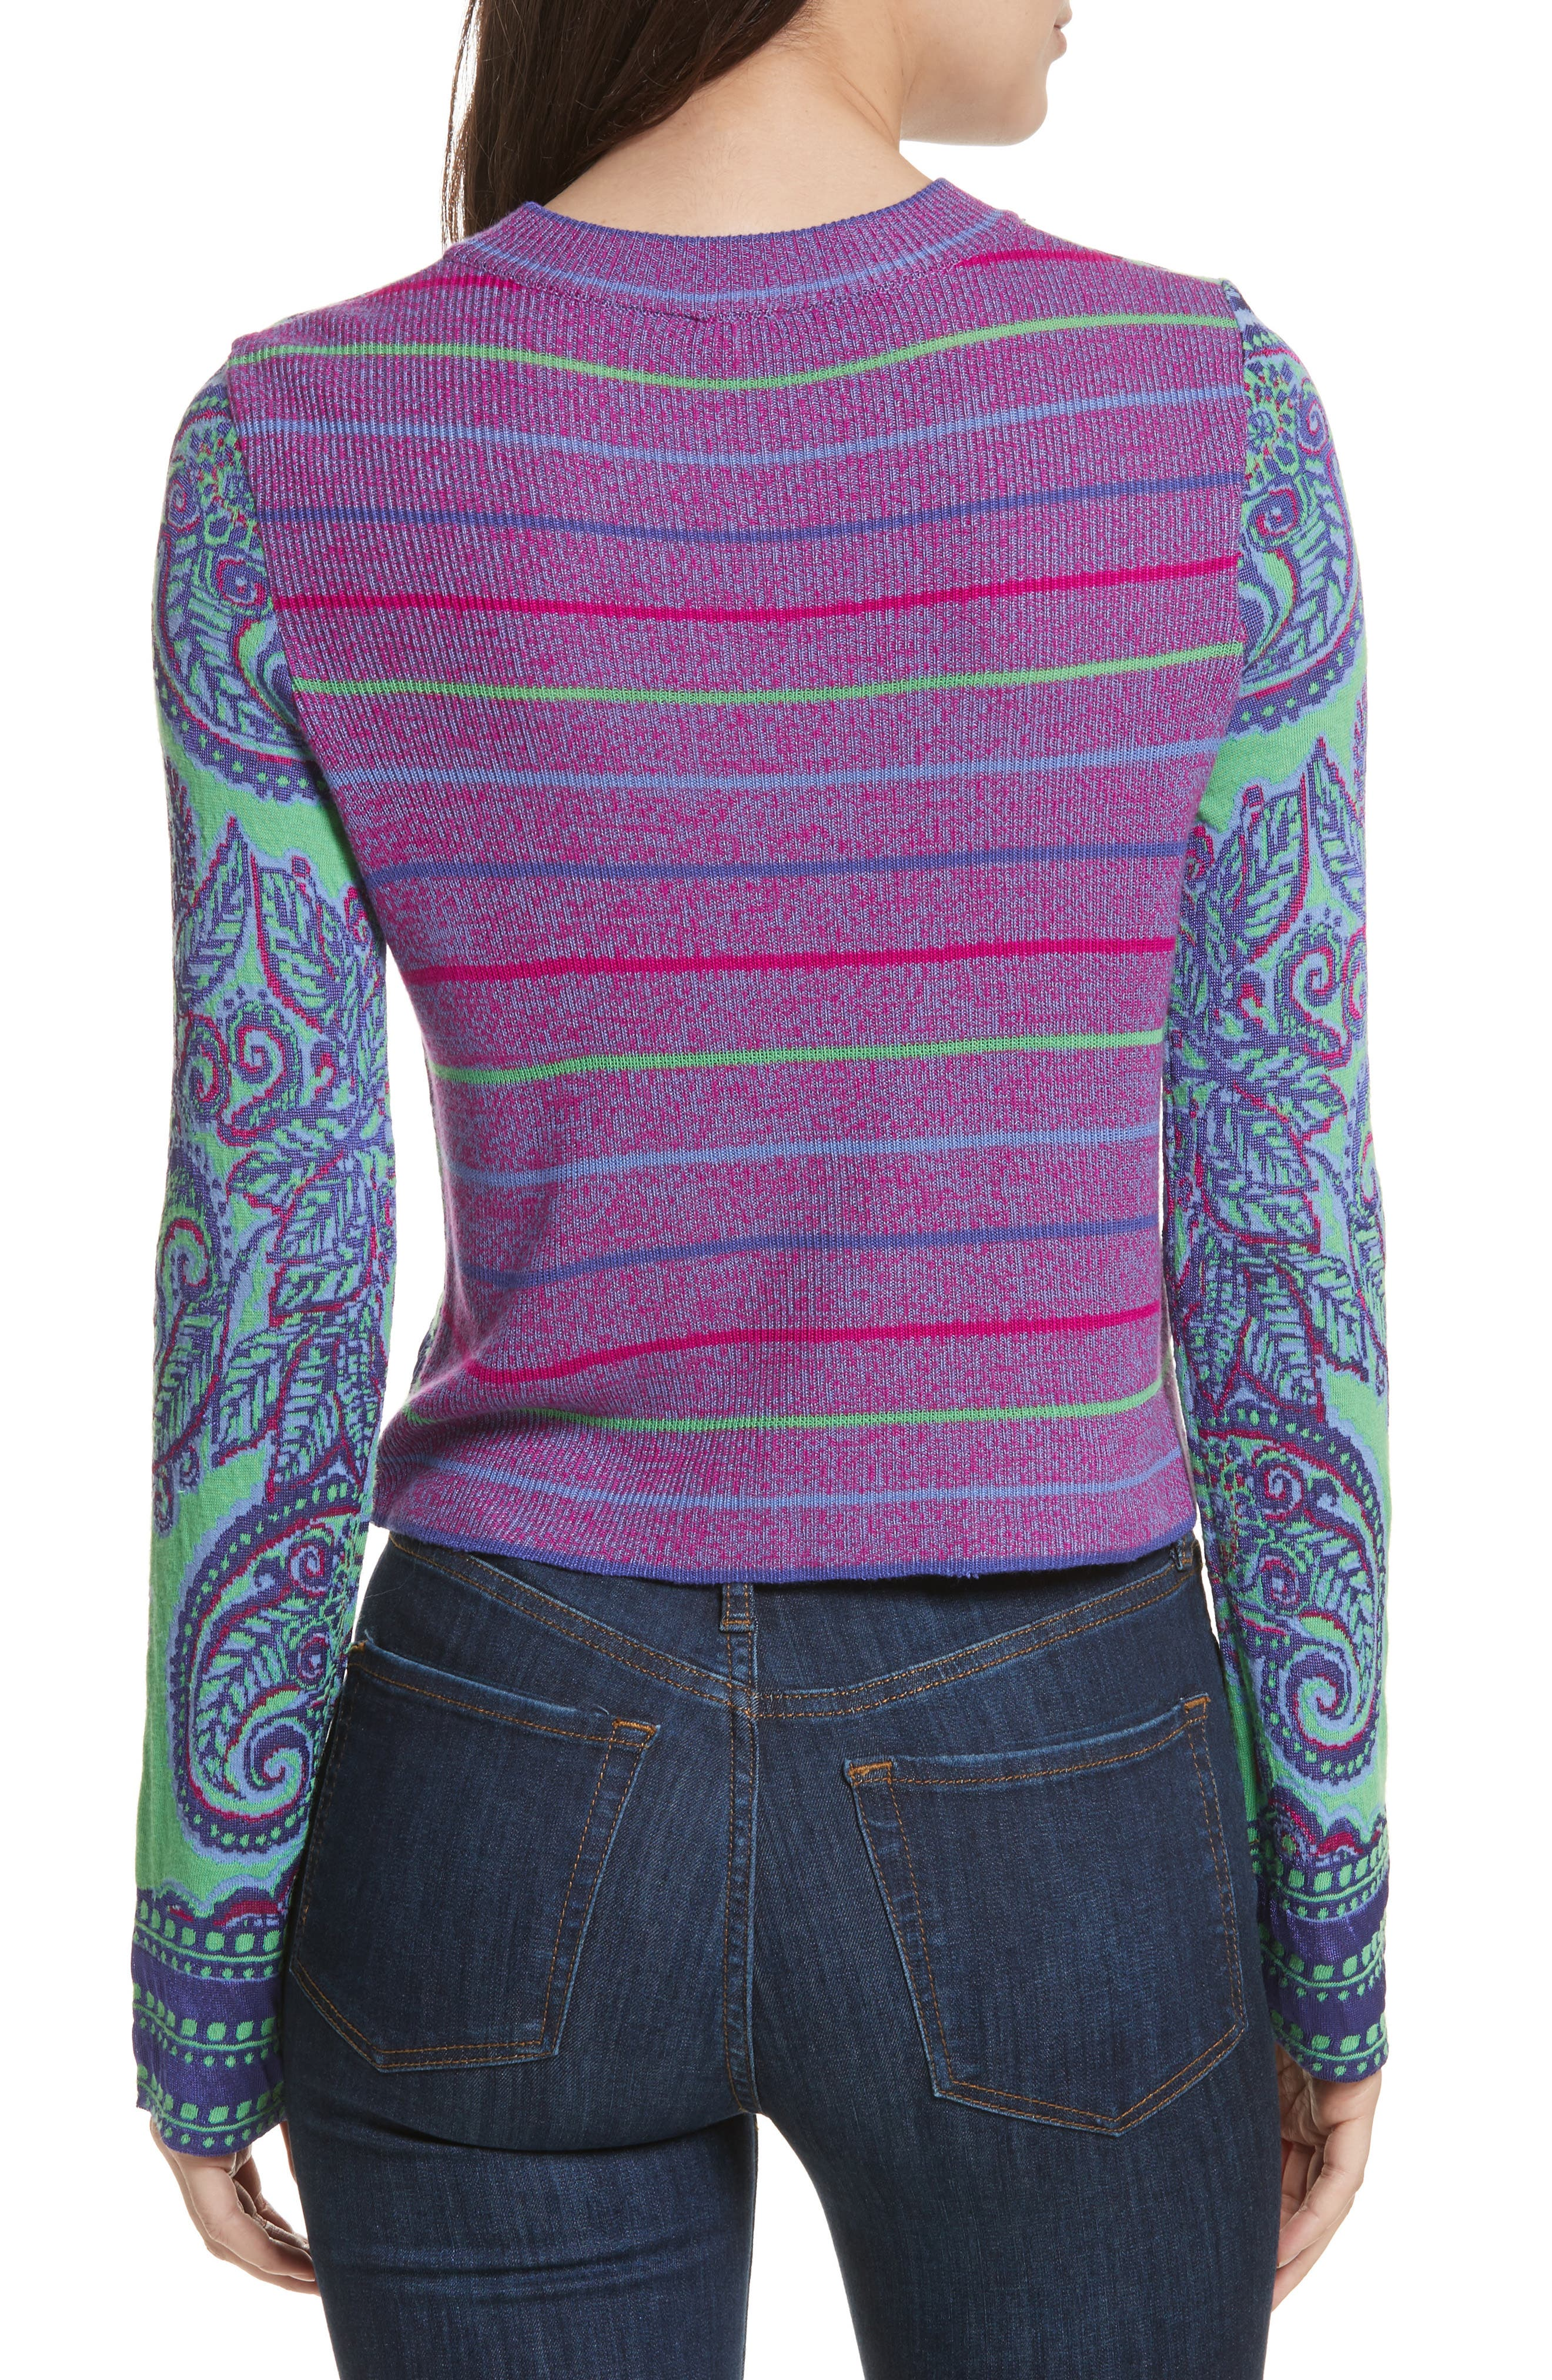 New Age Crewneck Sweater,                             Alternate thumbnail 3, color,                             Multi